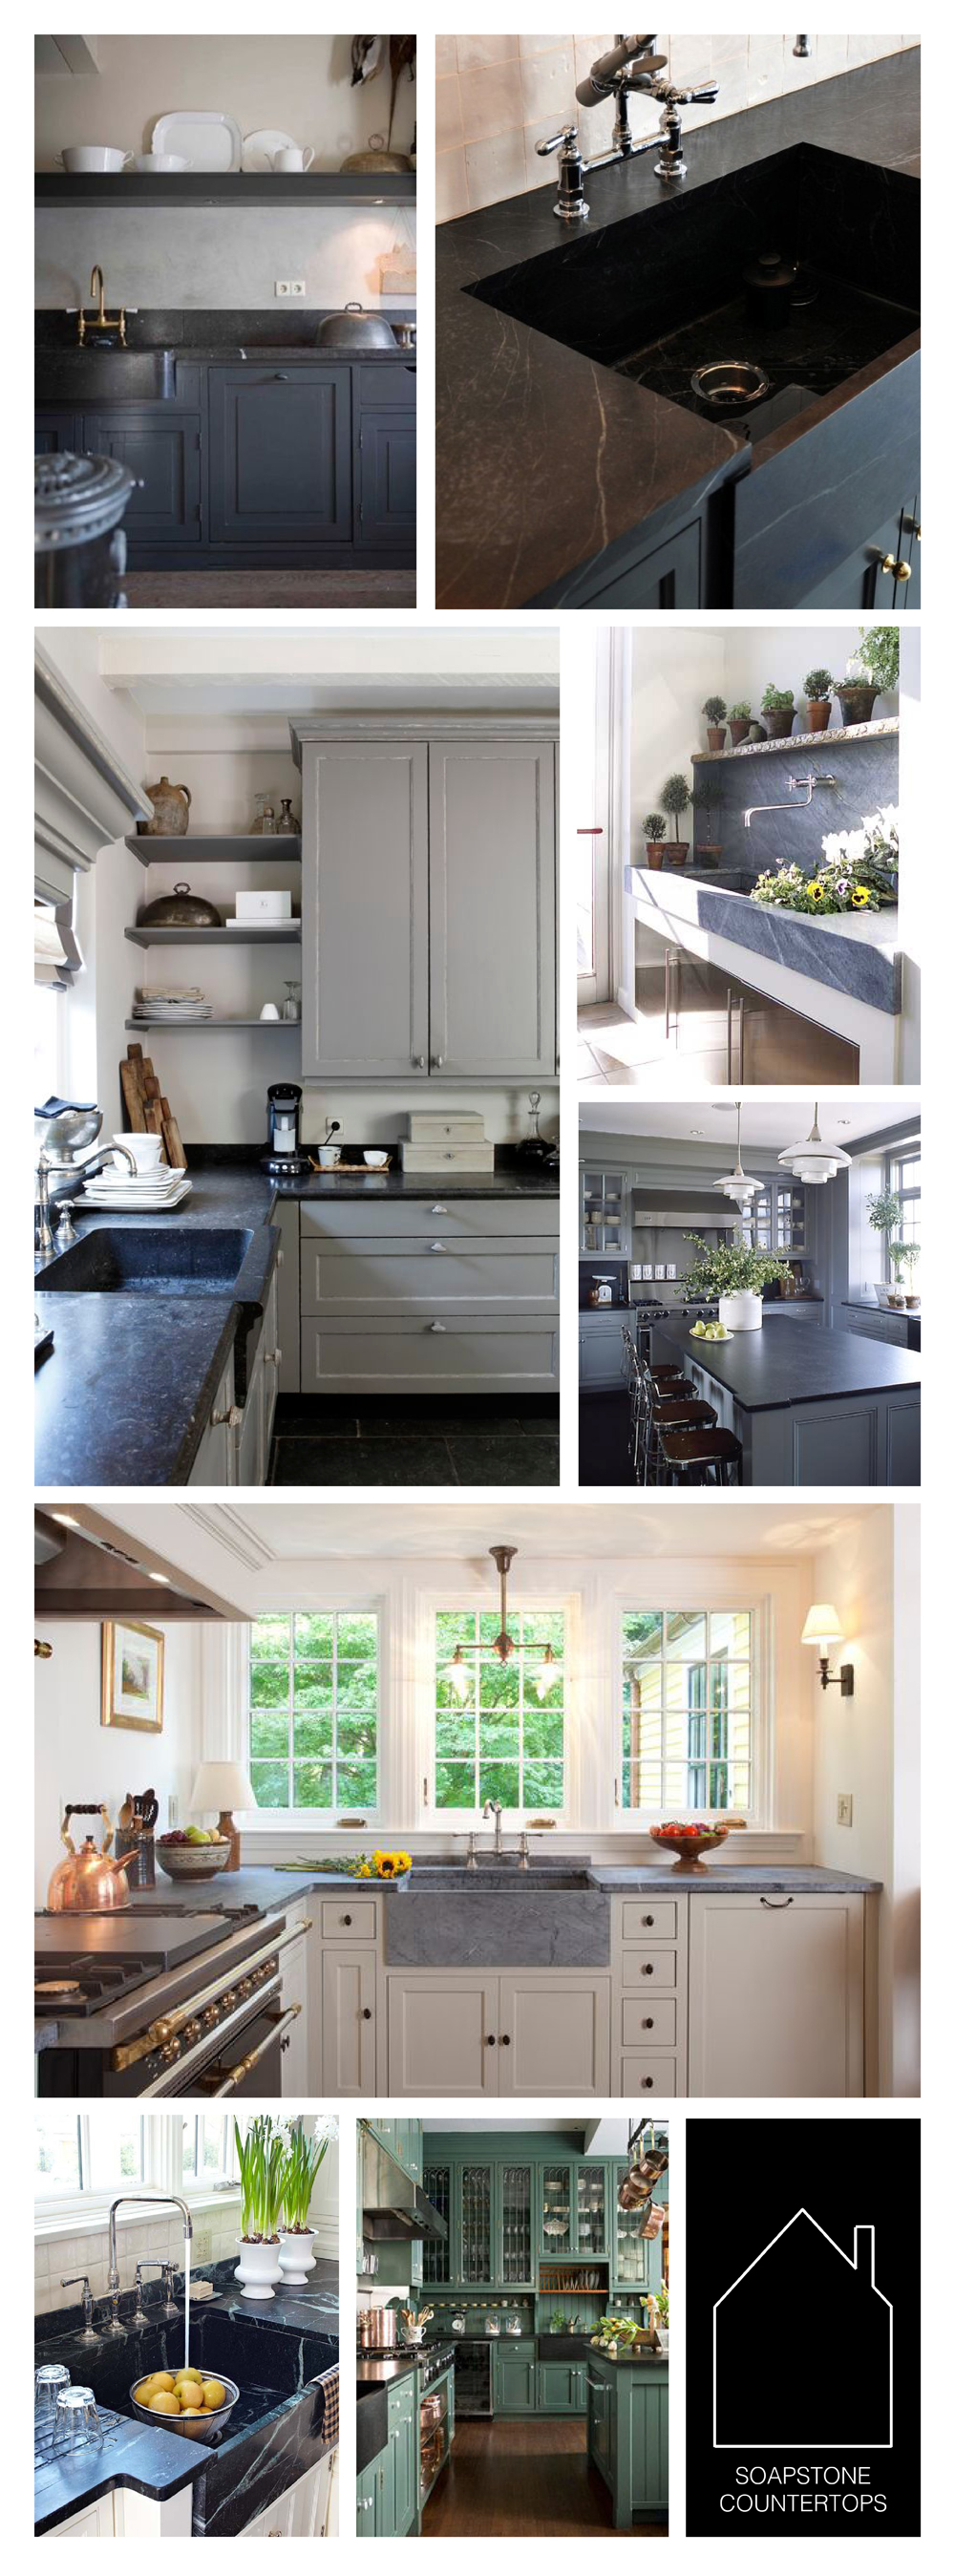 from top left - via  Apartment Therapy  - design by  MADE LLC.  via  REMODELISTA  - gray kitchen source unknown - BHG showcase house potting sink via  BHG  - dark gray kitchen via  Essence Design Studio  - design by  Frank Shirley Architects  - via  BHG  - source unknown